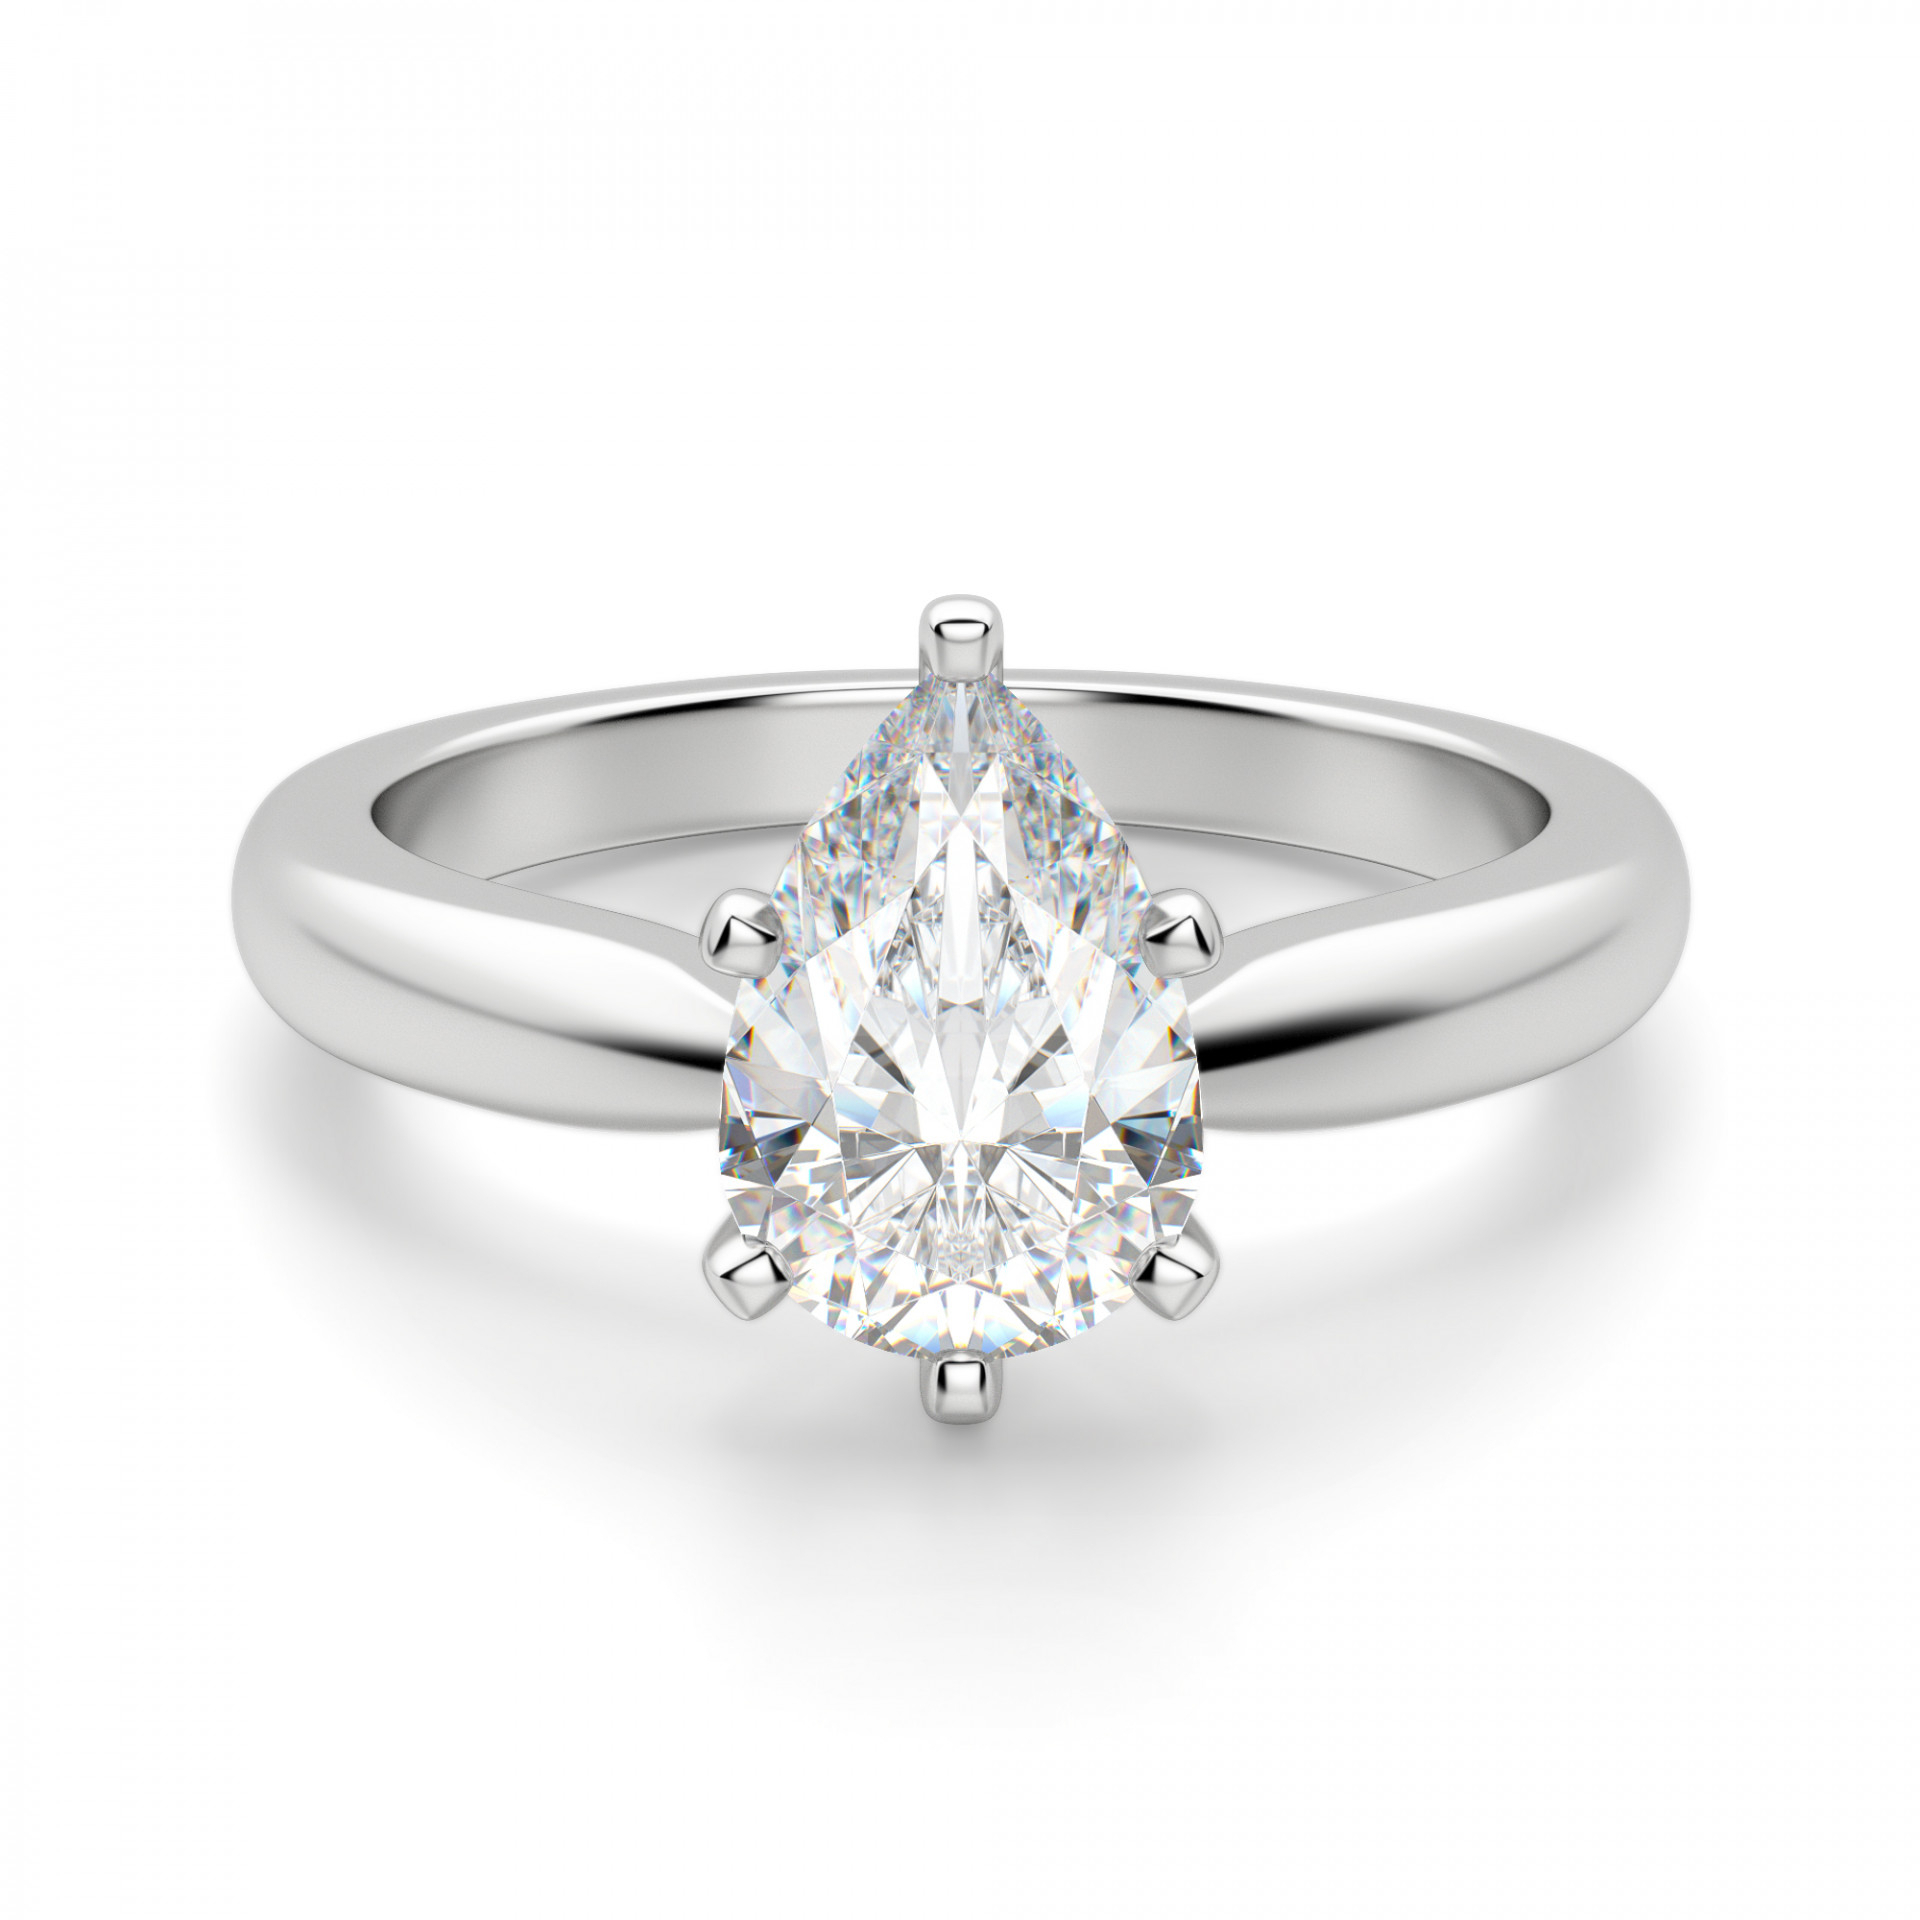 Tiffany Style Solitaire Pear Cut Engagement Ring For Tryst Pear Shaped Diamond Engagement Rings (Gallery 12 of 25)